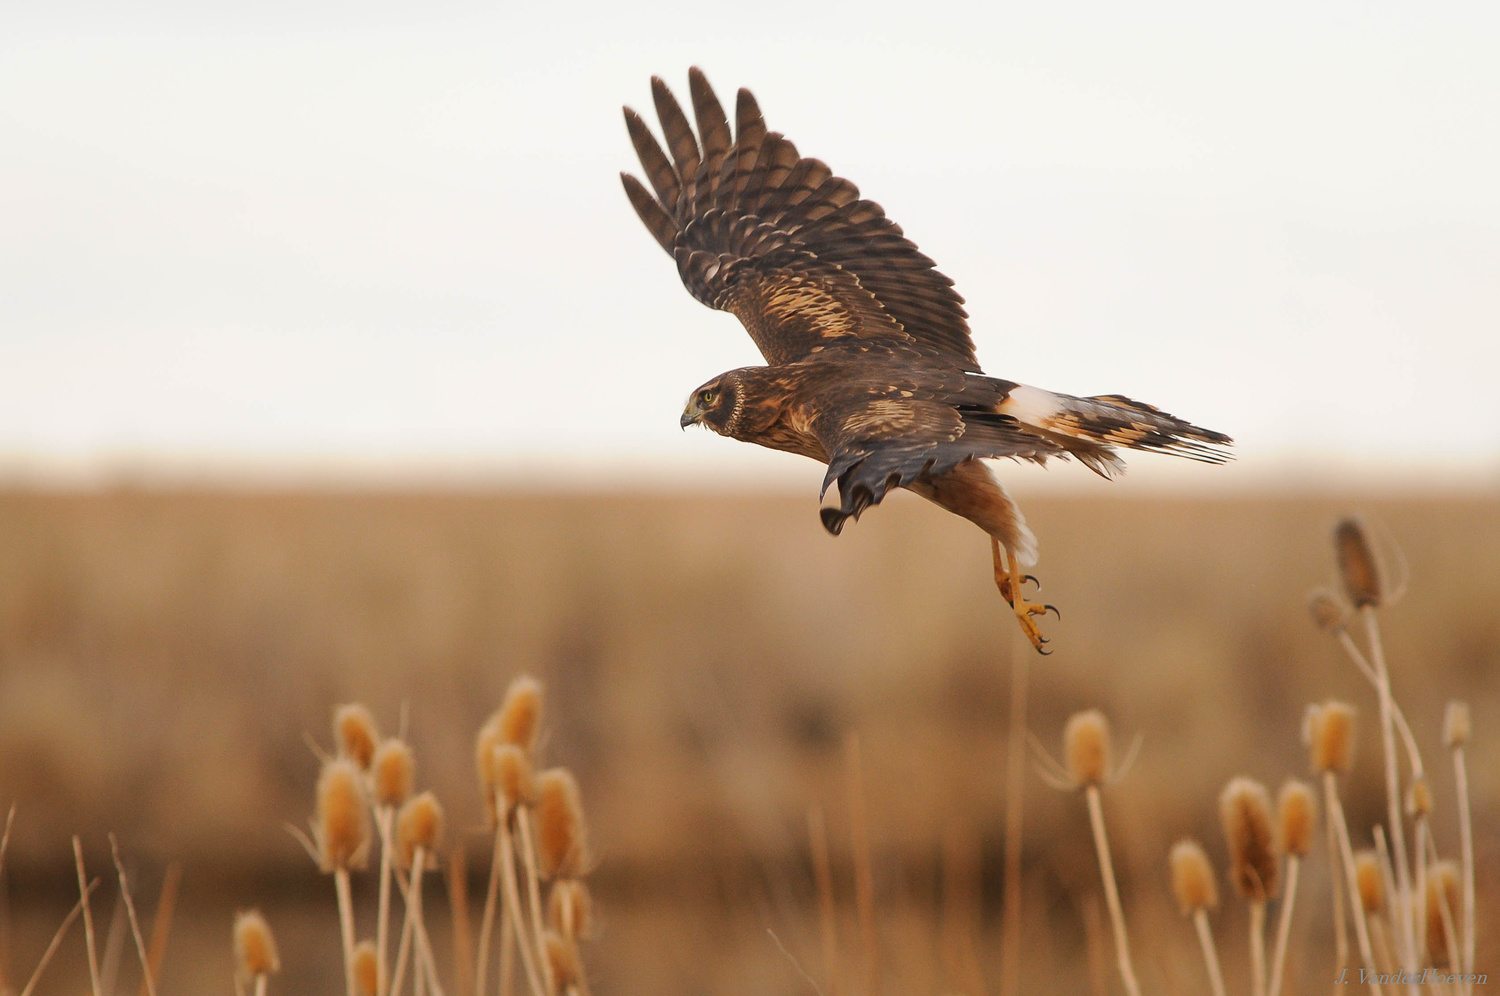 The Northern Harrier by Jake VanderHoeven